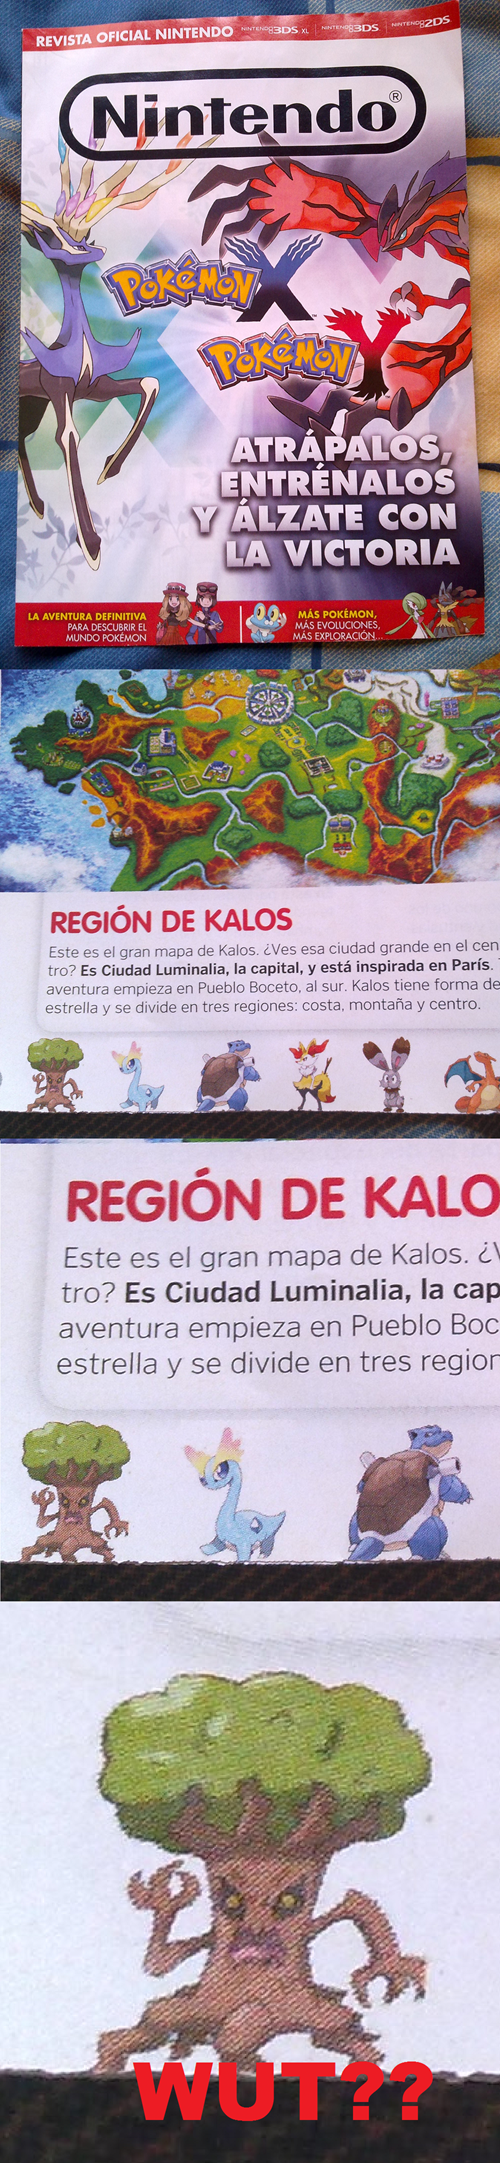 nintendo guidebook - 7987537664